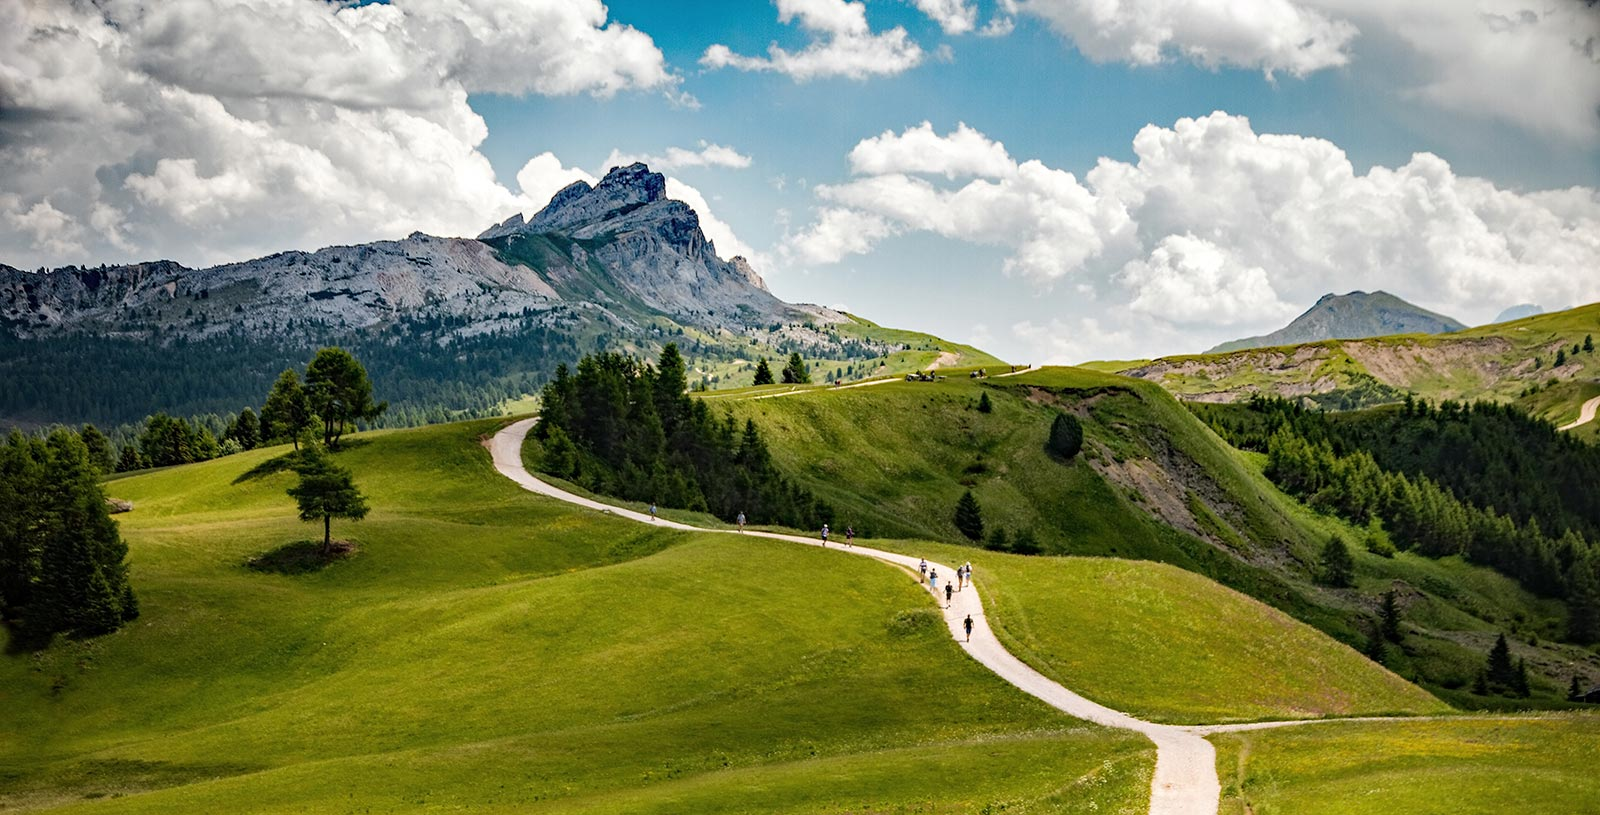 The mountains of the Alta Badia in different shades of green